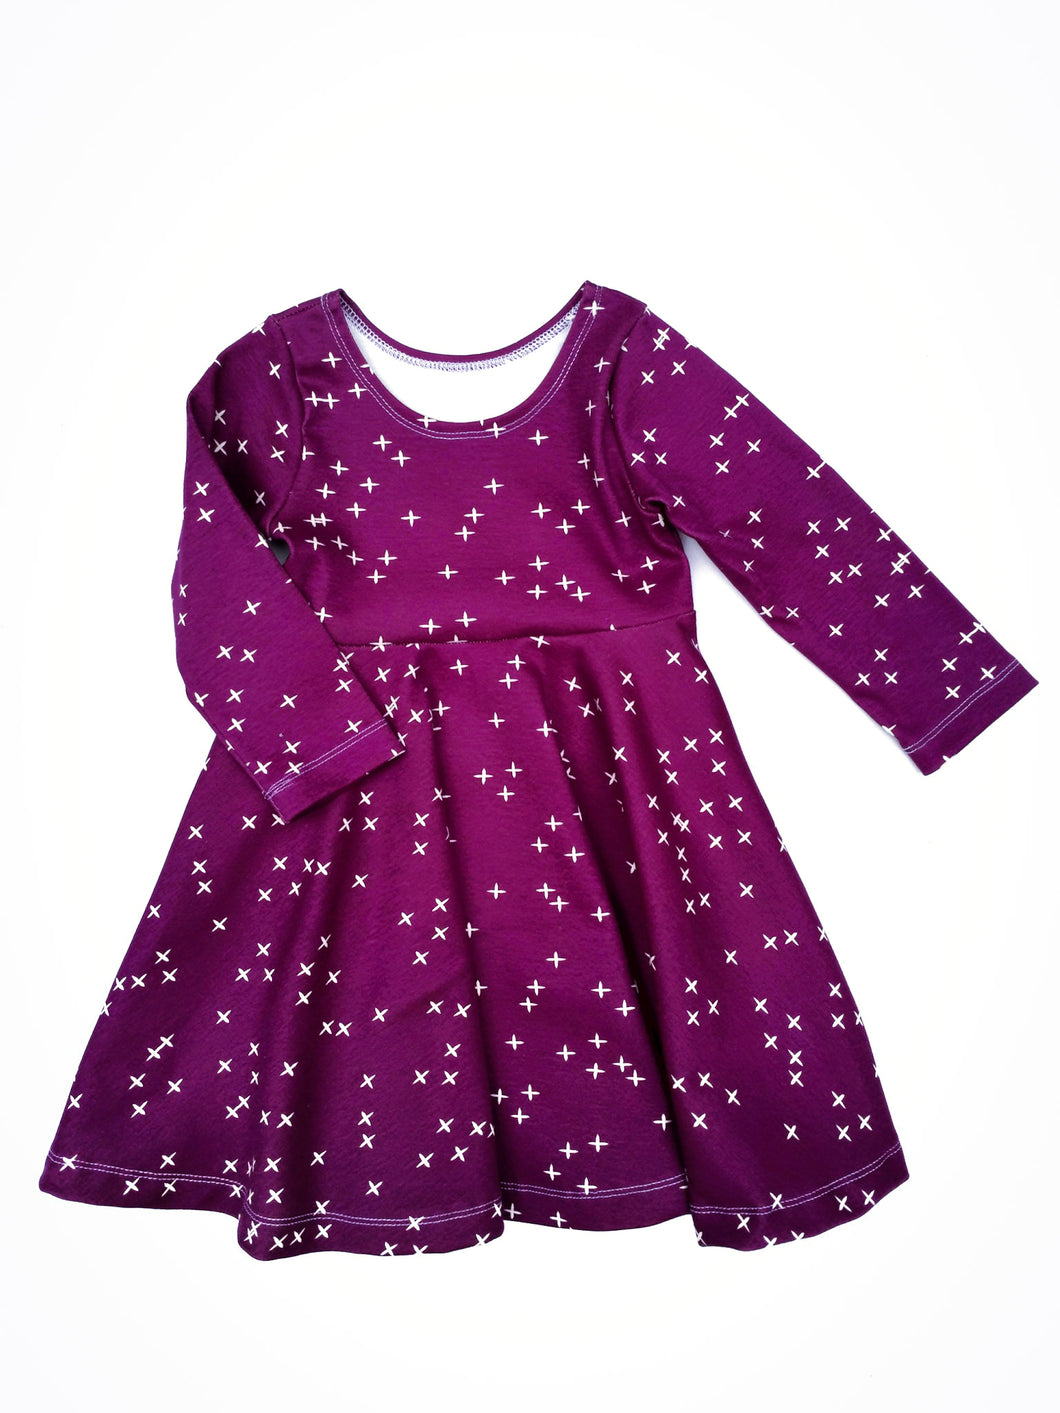 Infinity Dress - Wink on Plum - Organic Cotton Knit, sizes 9/12 months to 6 years